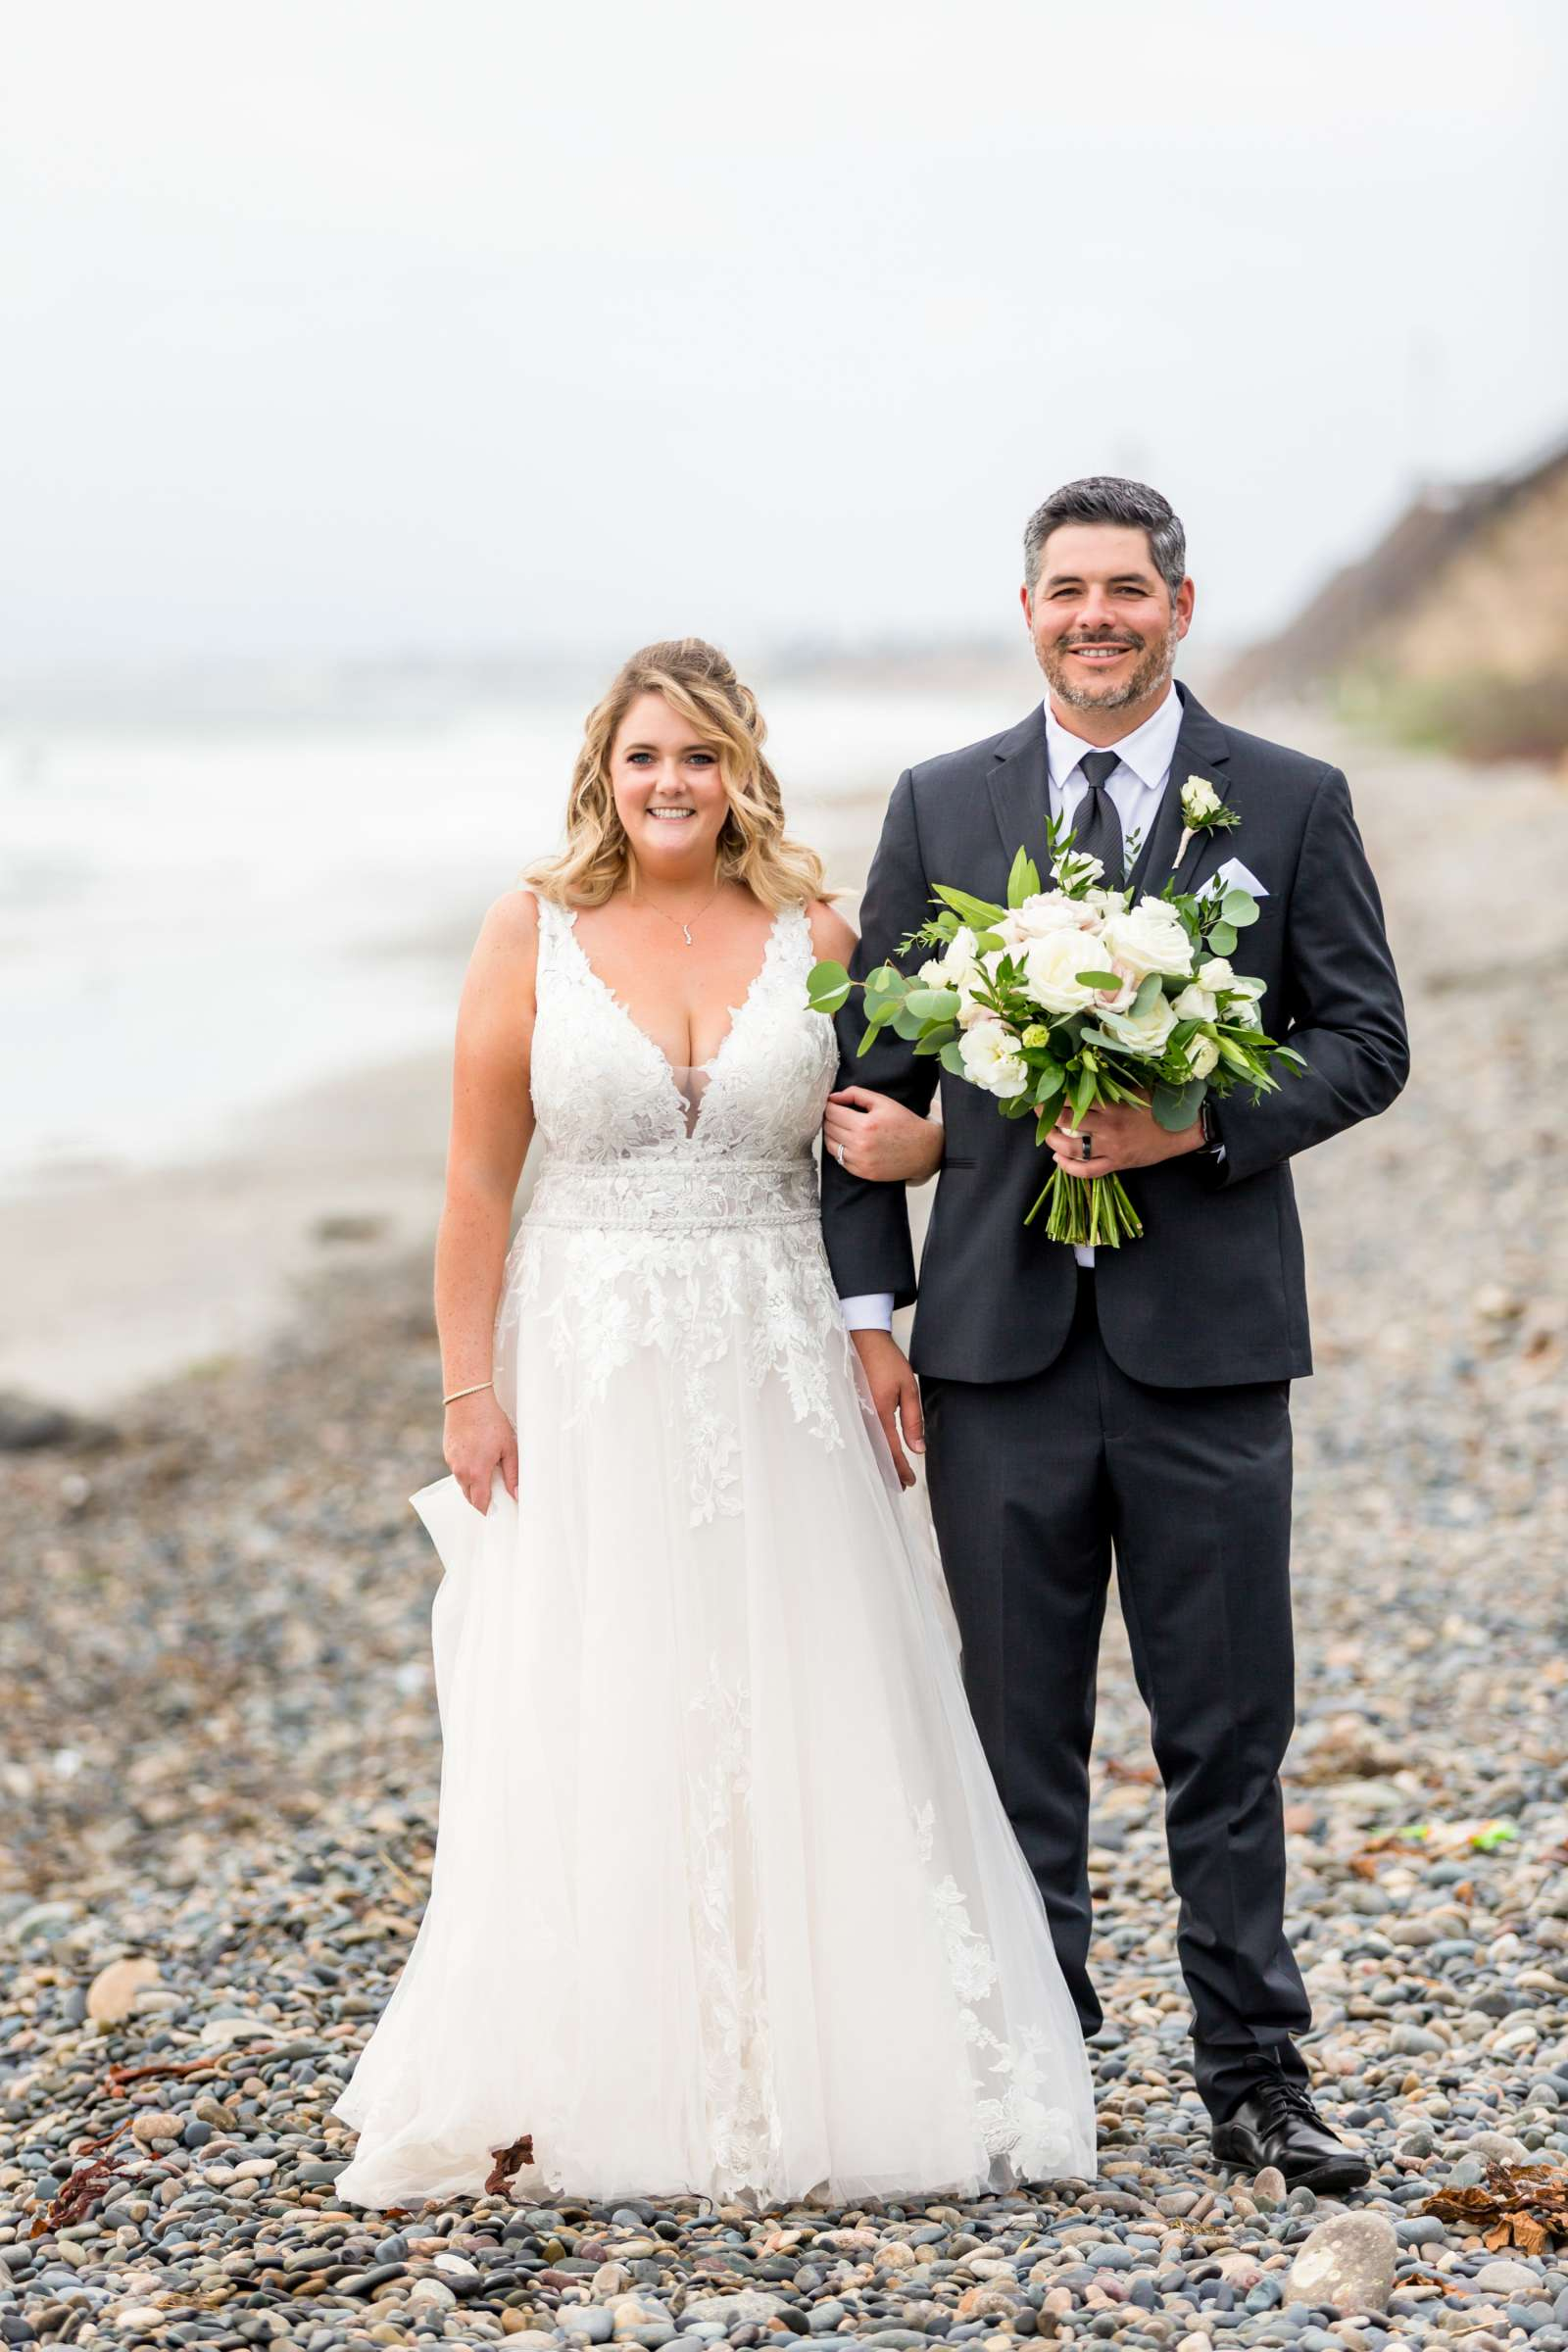 Cape Rey Carlsbad, A Hilton Resort Wedding, Michelle and Justin Wedding Photo #8 by True Photography